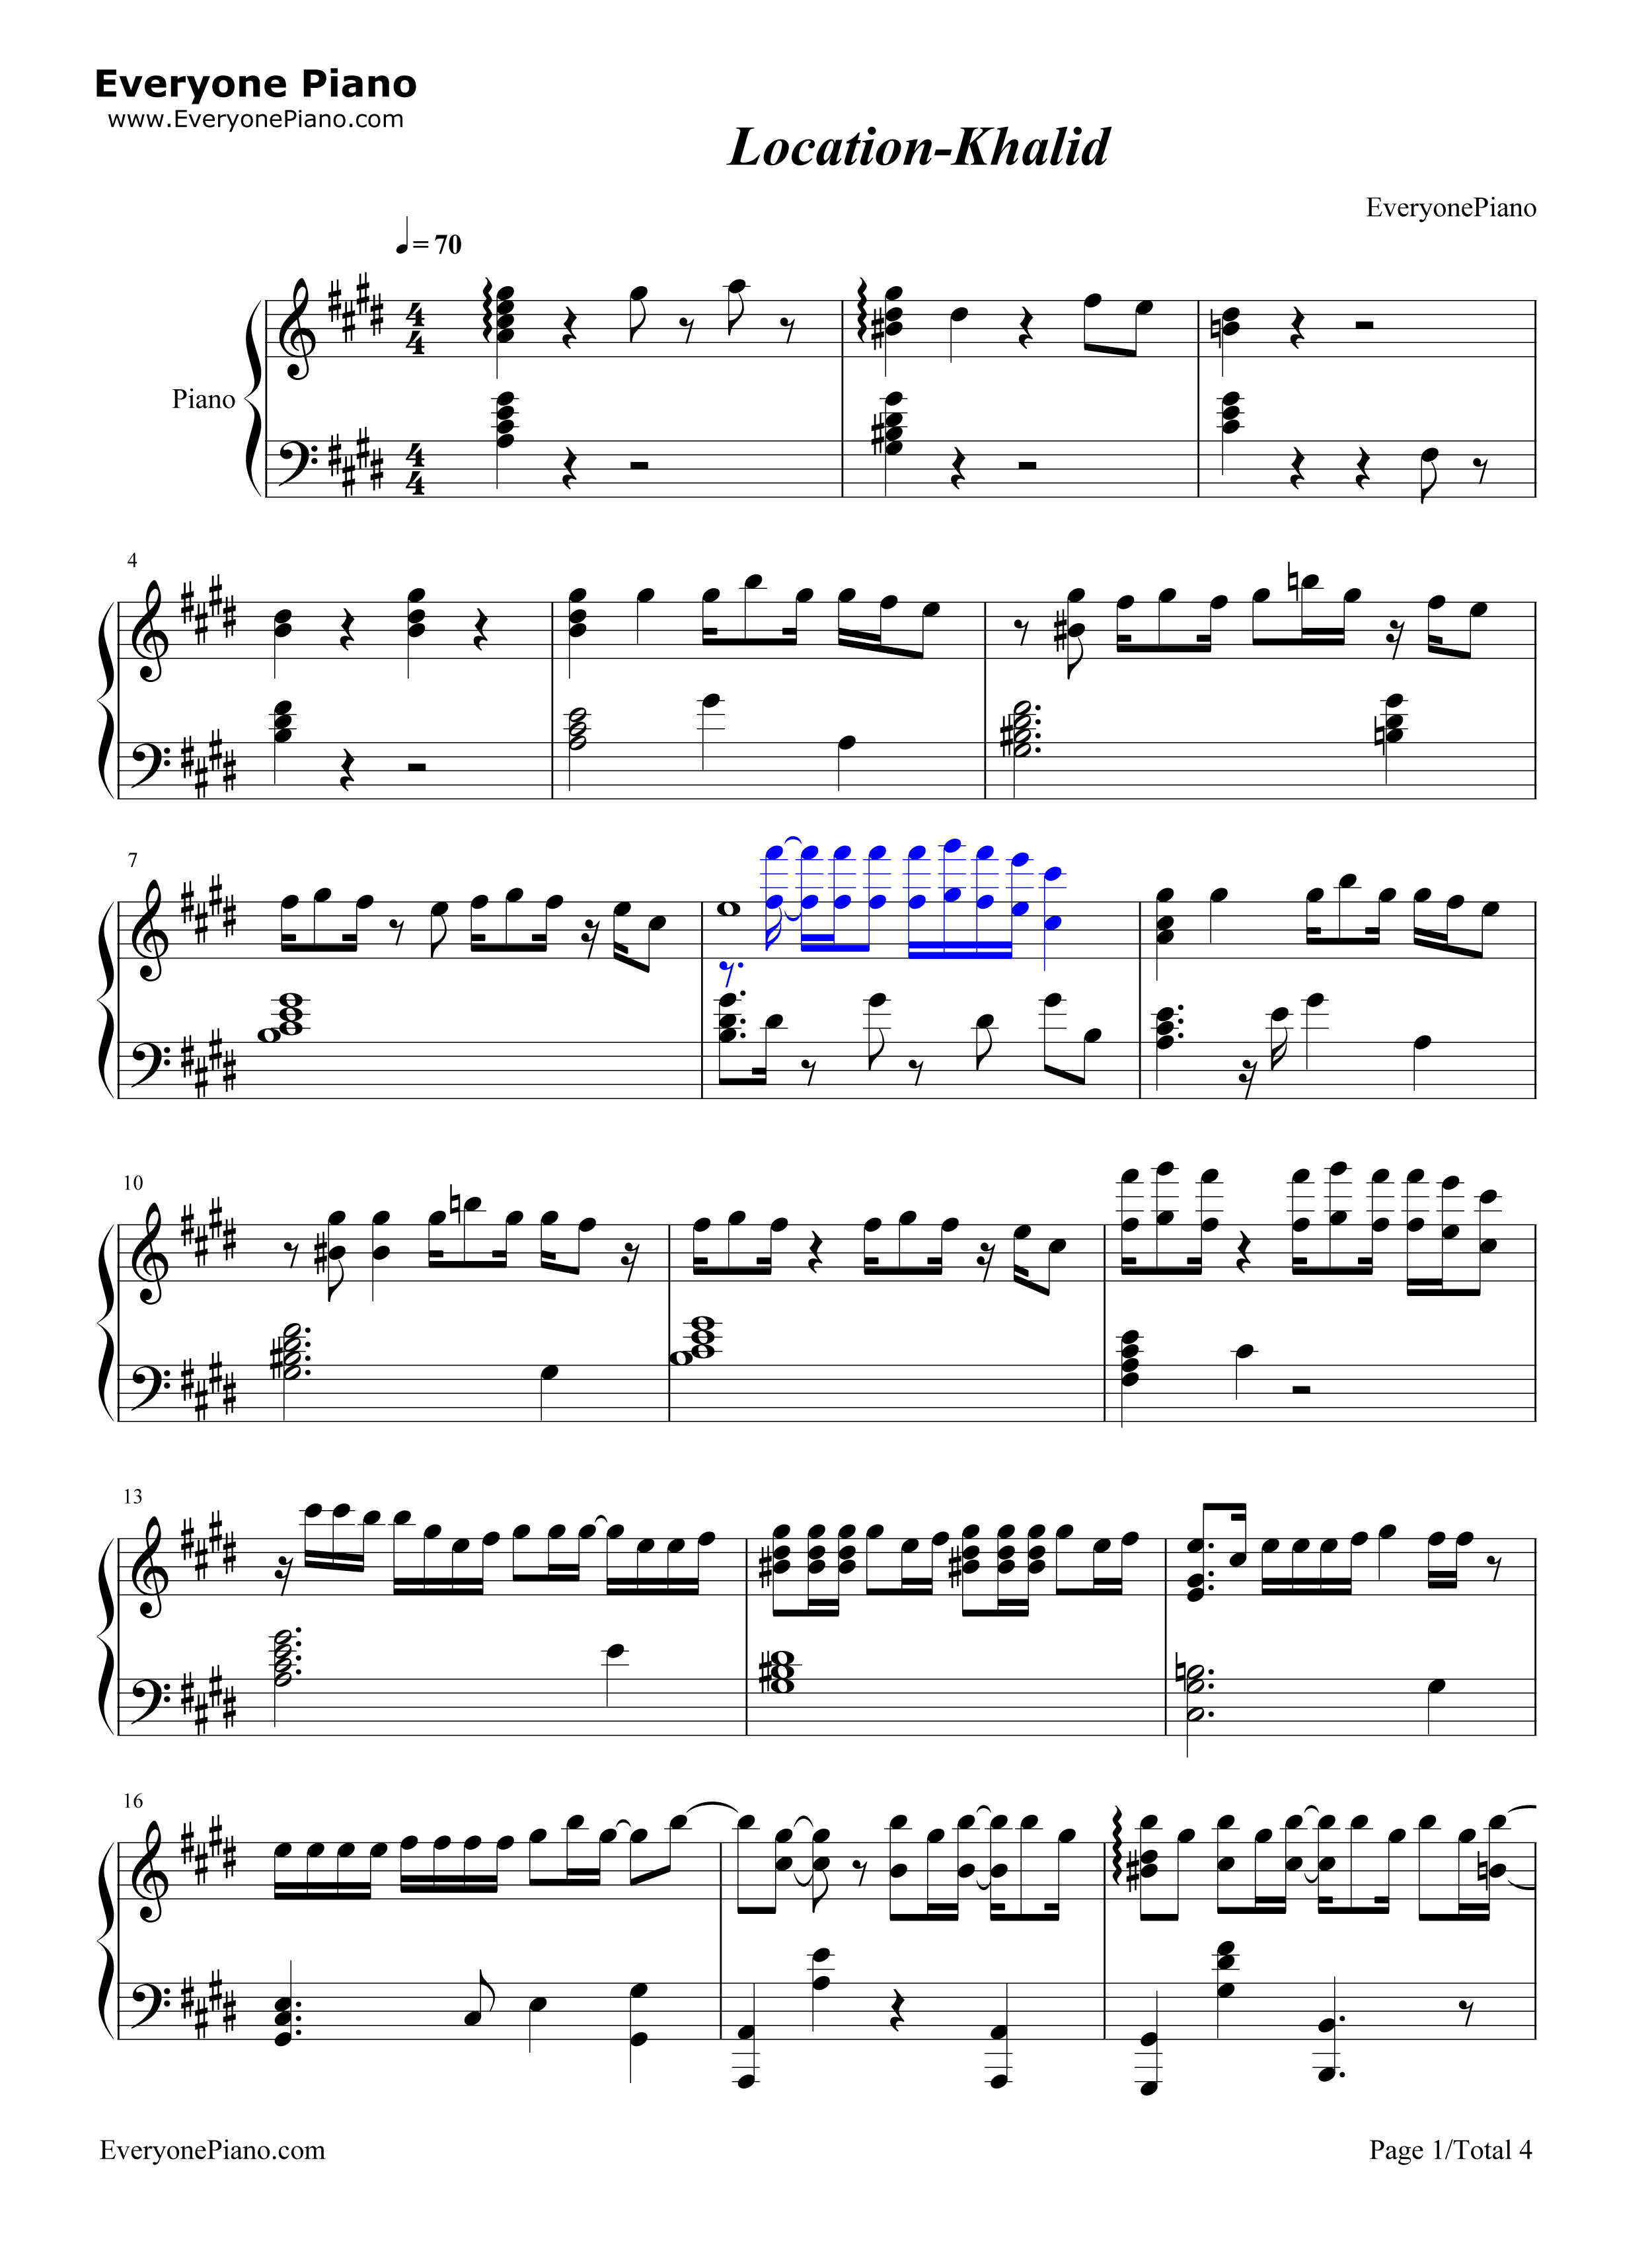 Location khalid stave preview 1 free piano sheet music piano chords listen now print sheet location khalid stave preview 1 hexwebz Gallery